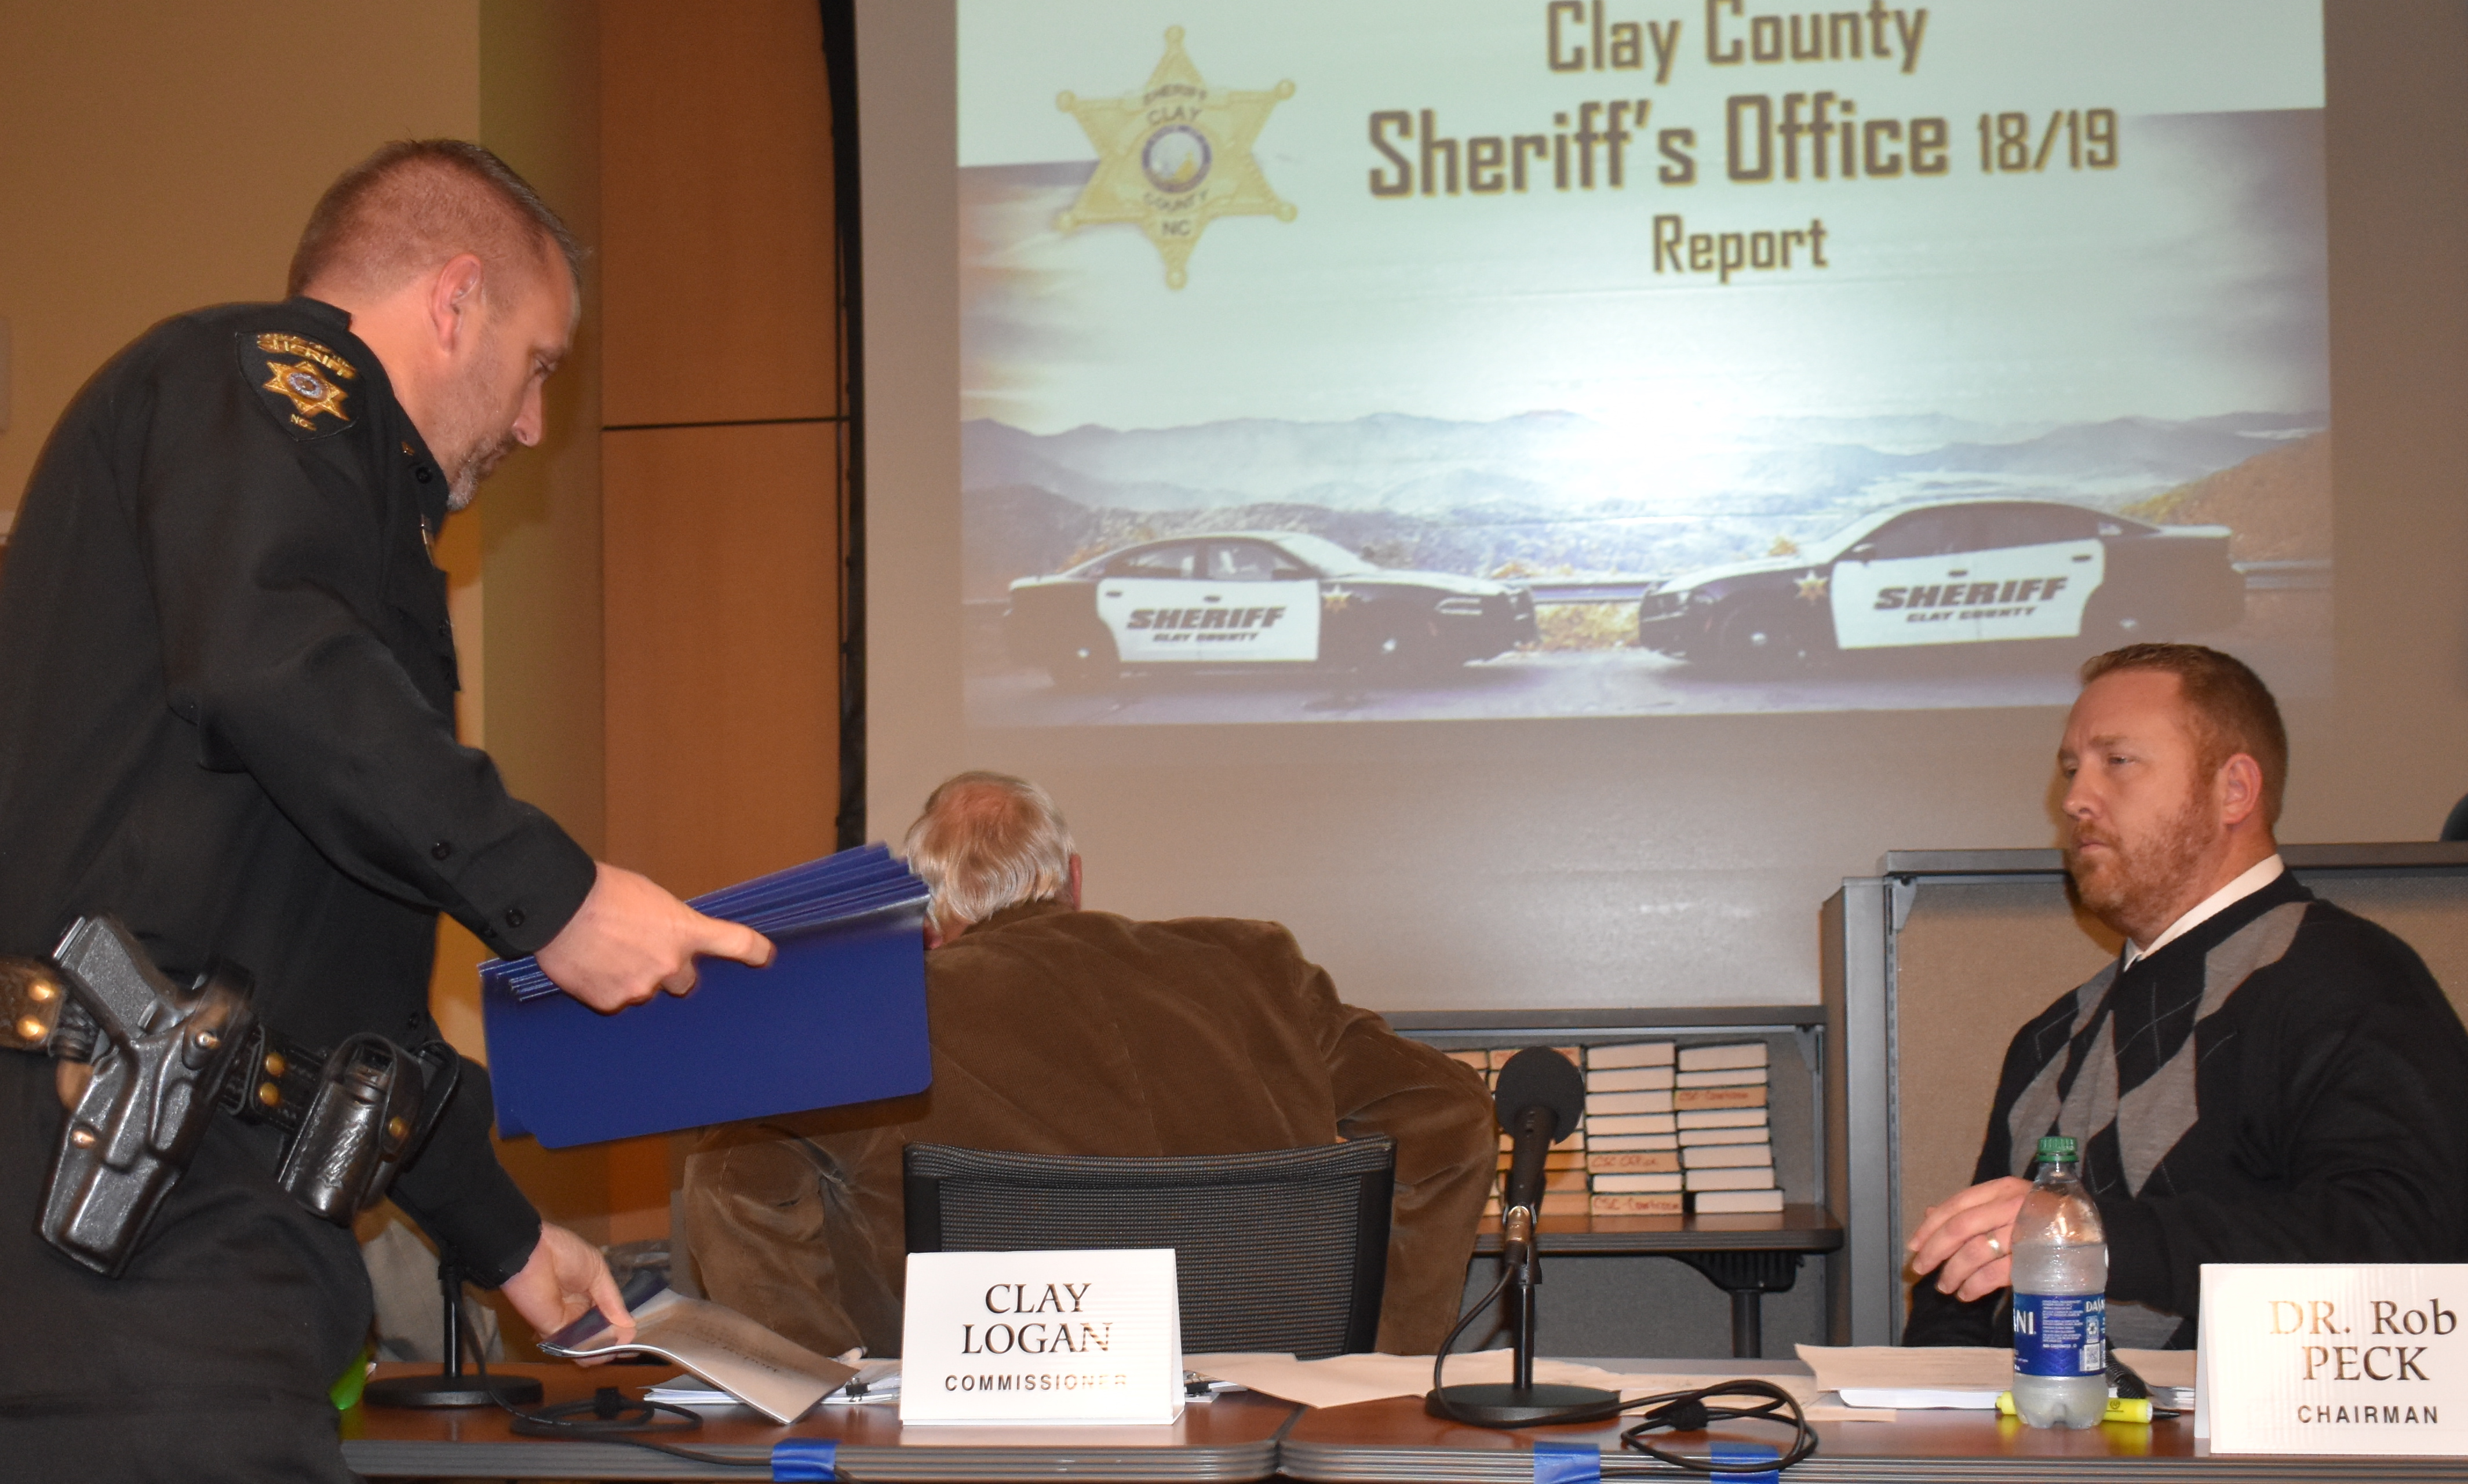 (Becky Long • Clay County Progress) Clay County Sheriff Bobby Deese hands out reports to the commission board including Chairman Rob Peck during a Feb. 6 meeting. Deese provided a statistical update of his first year in office.